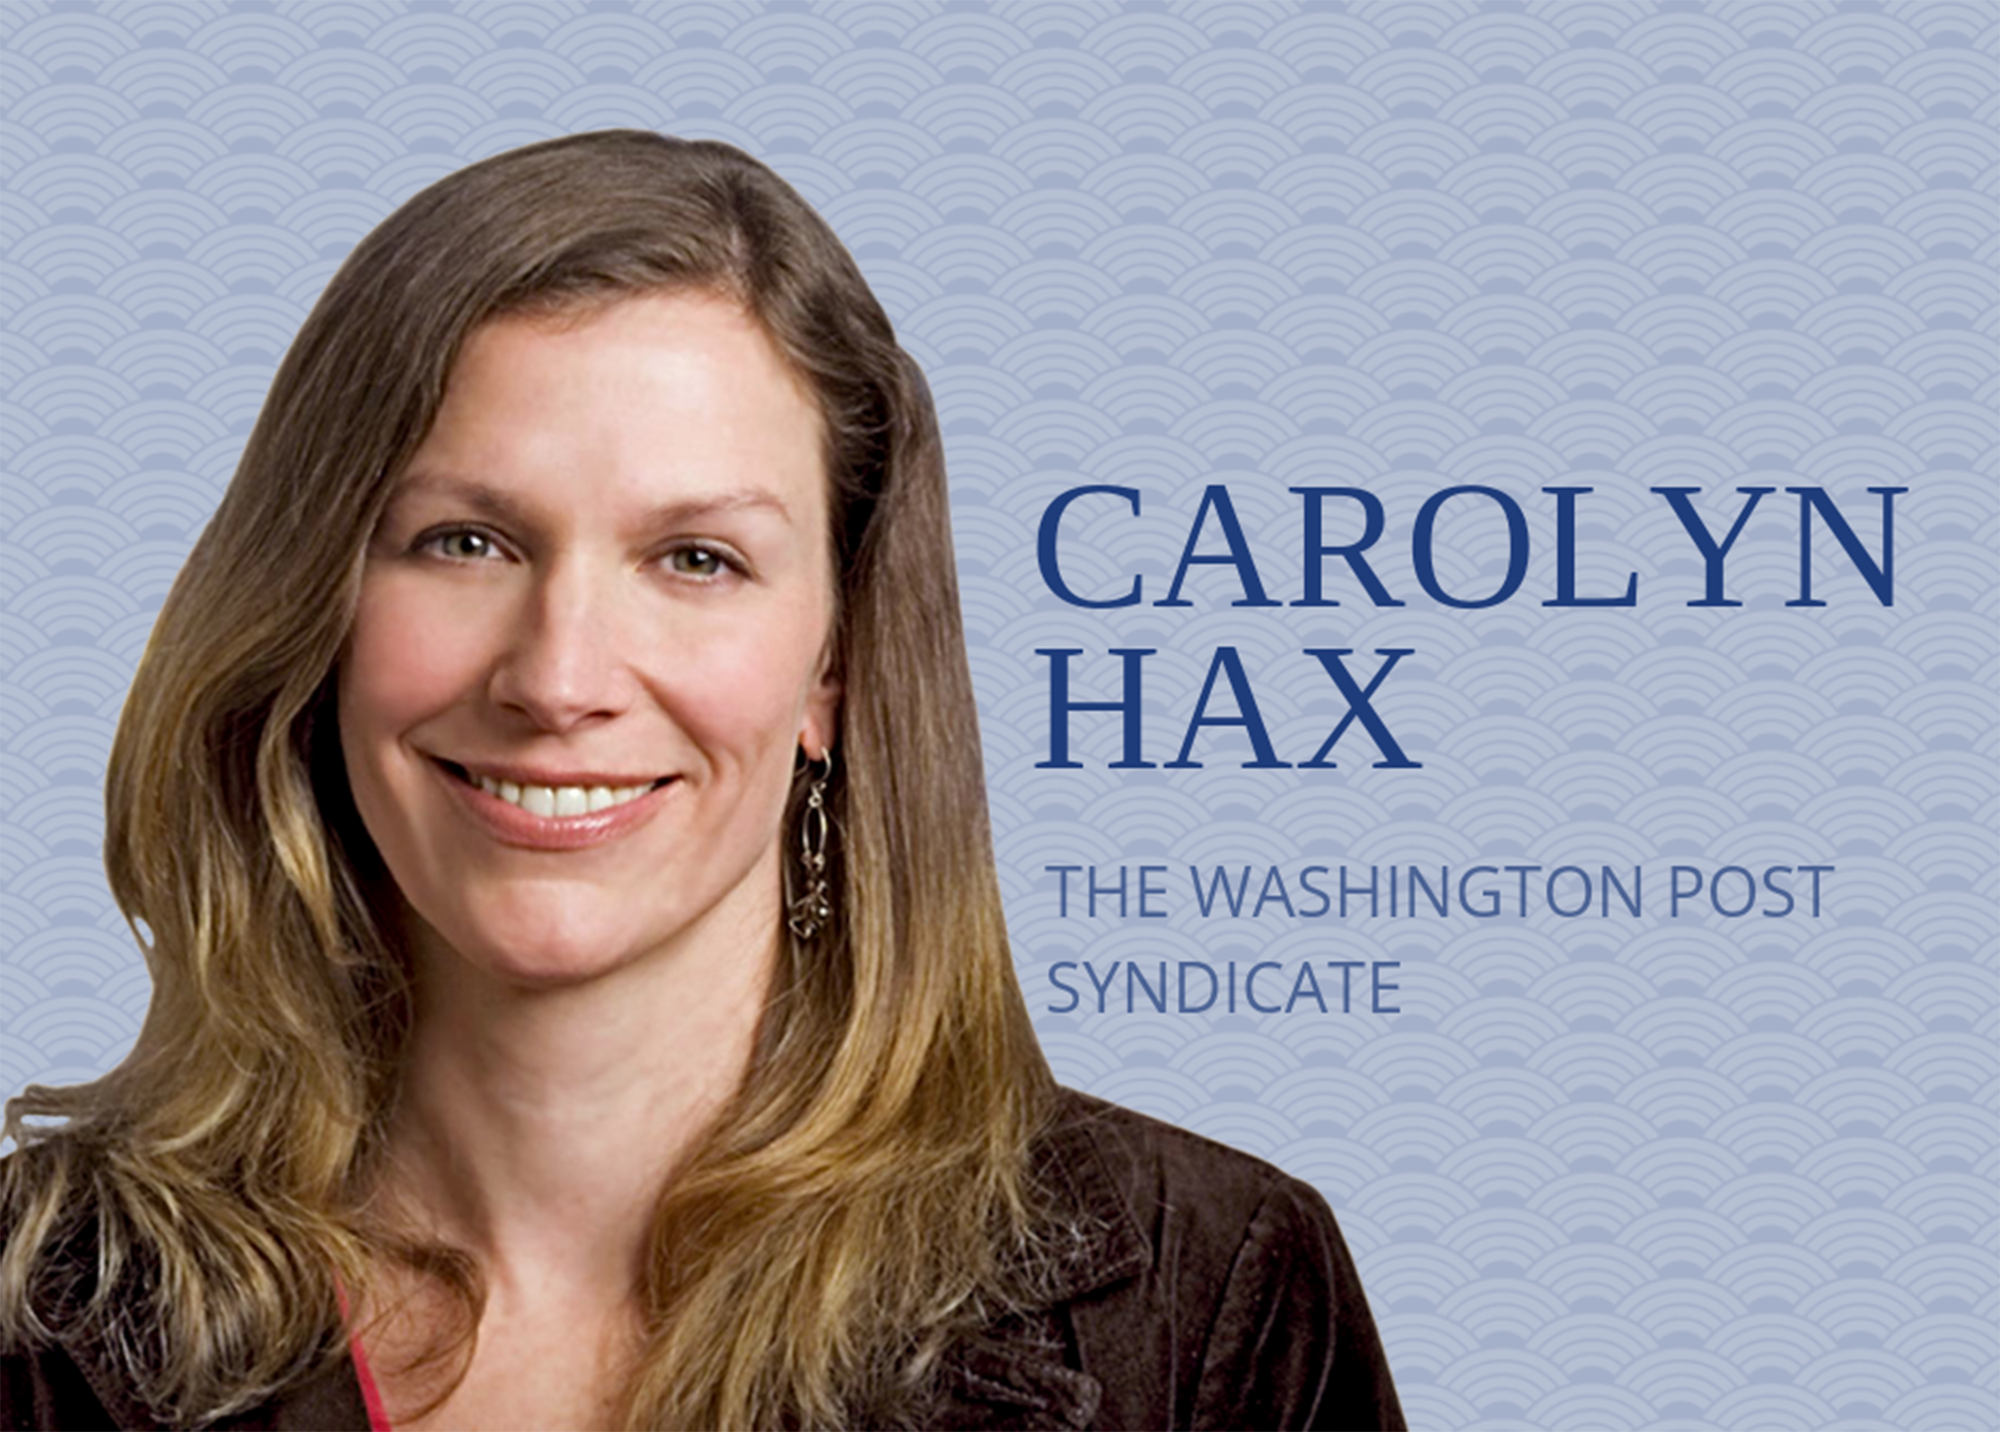 Carolyn Hax: Get professional help for spouse and 6-year-old who don't get along